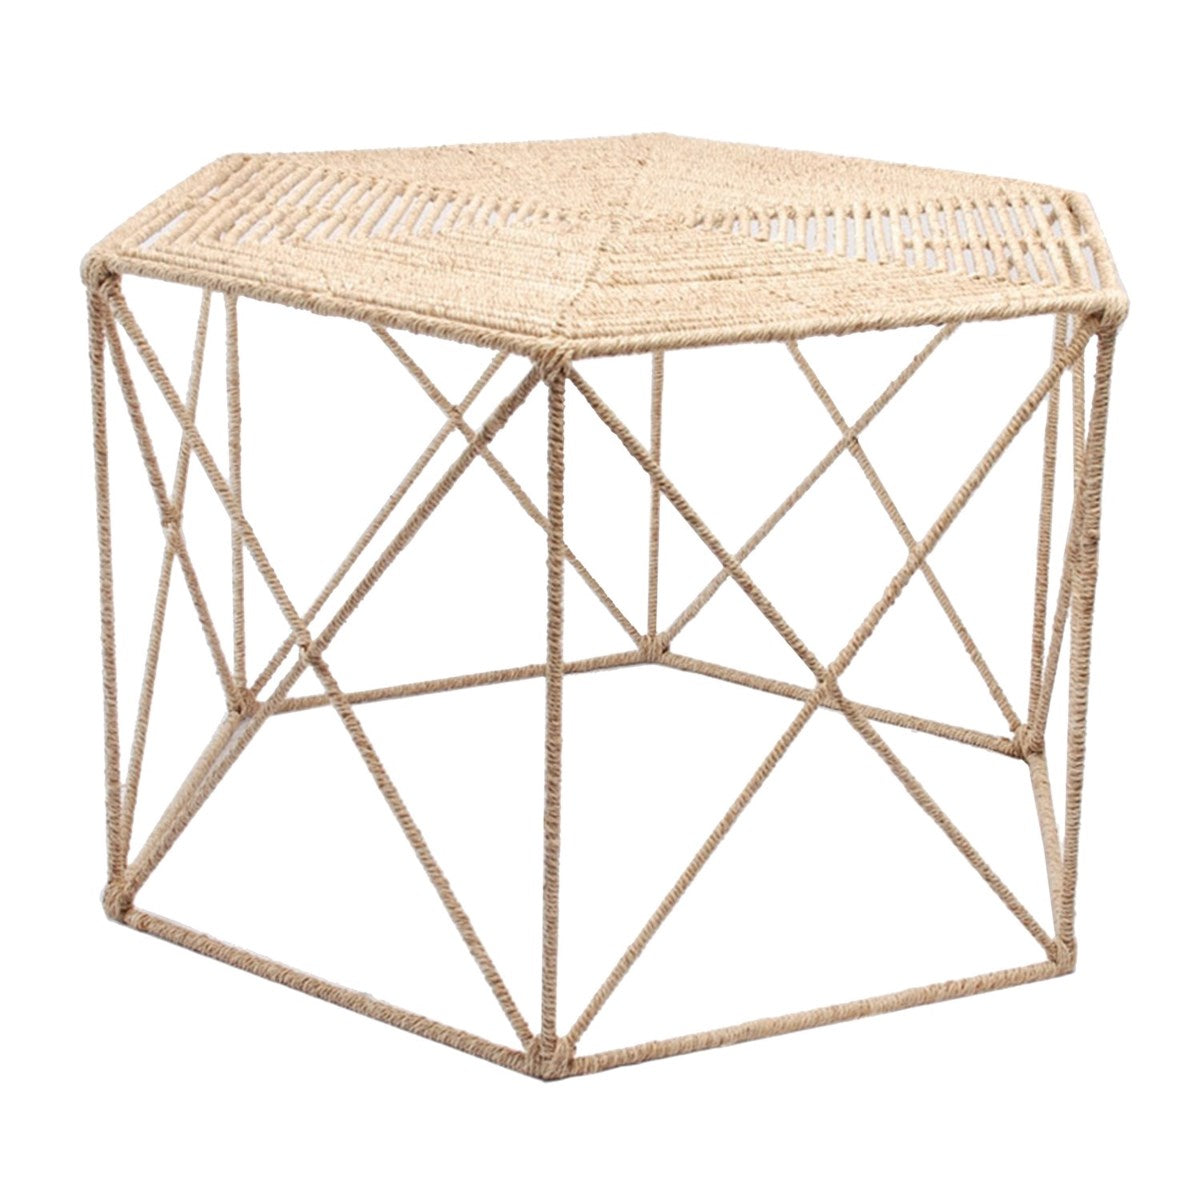 Jute Hexagonal Coffee Table